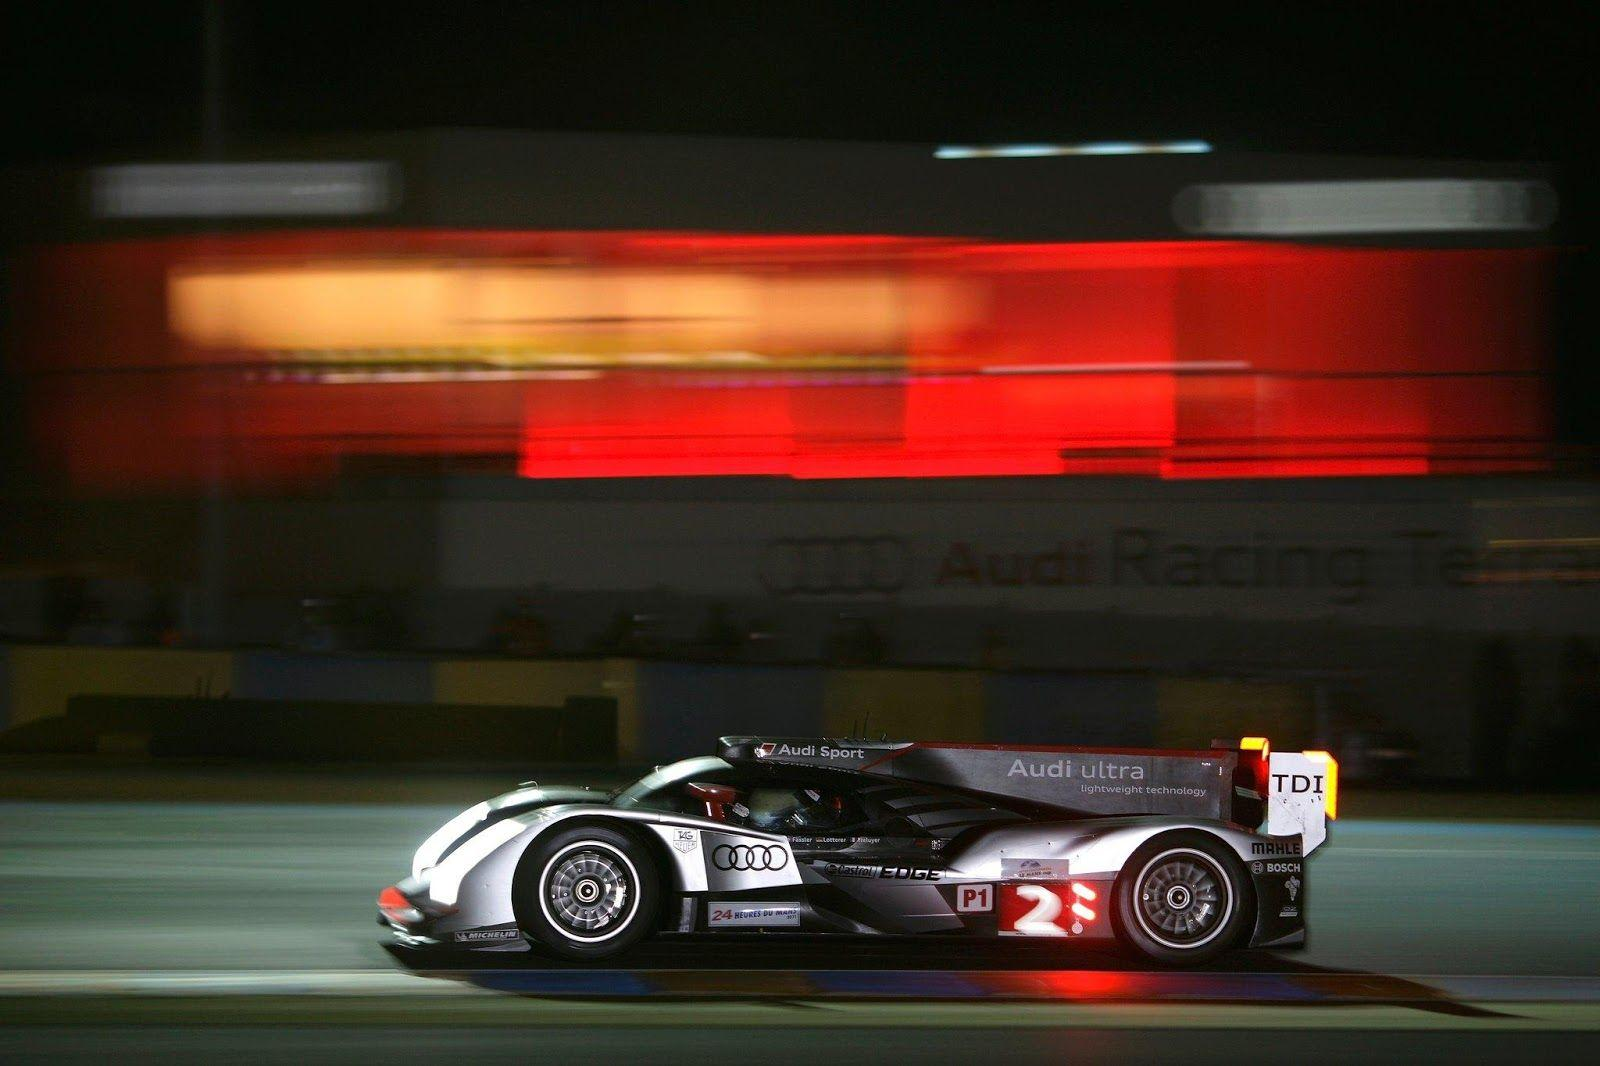 New Uk Cars: Free Picture And Wallpapers Of Audi r18